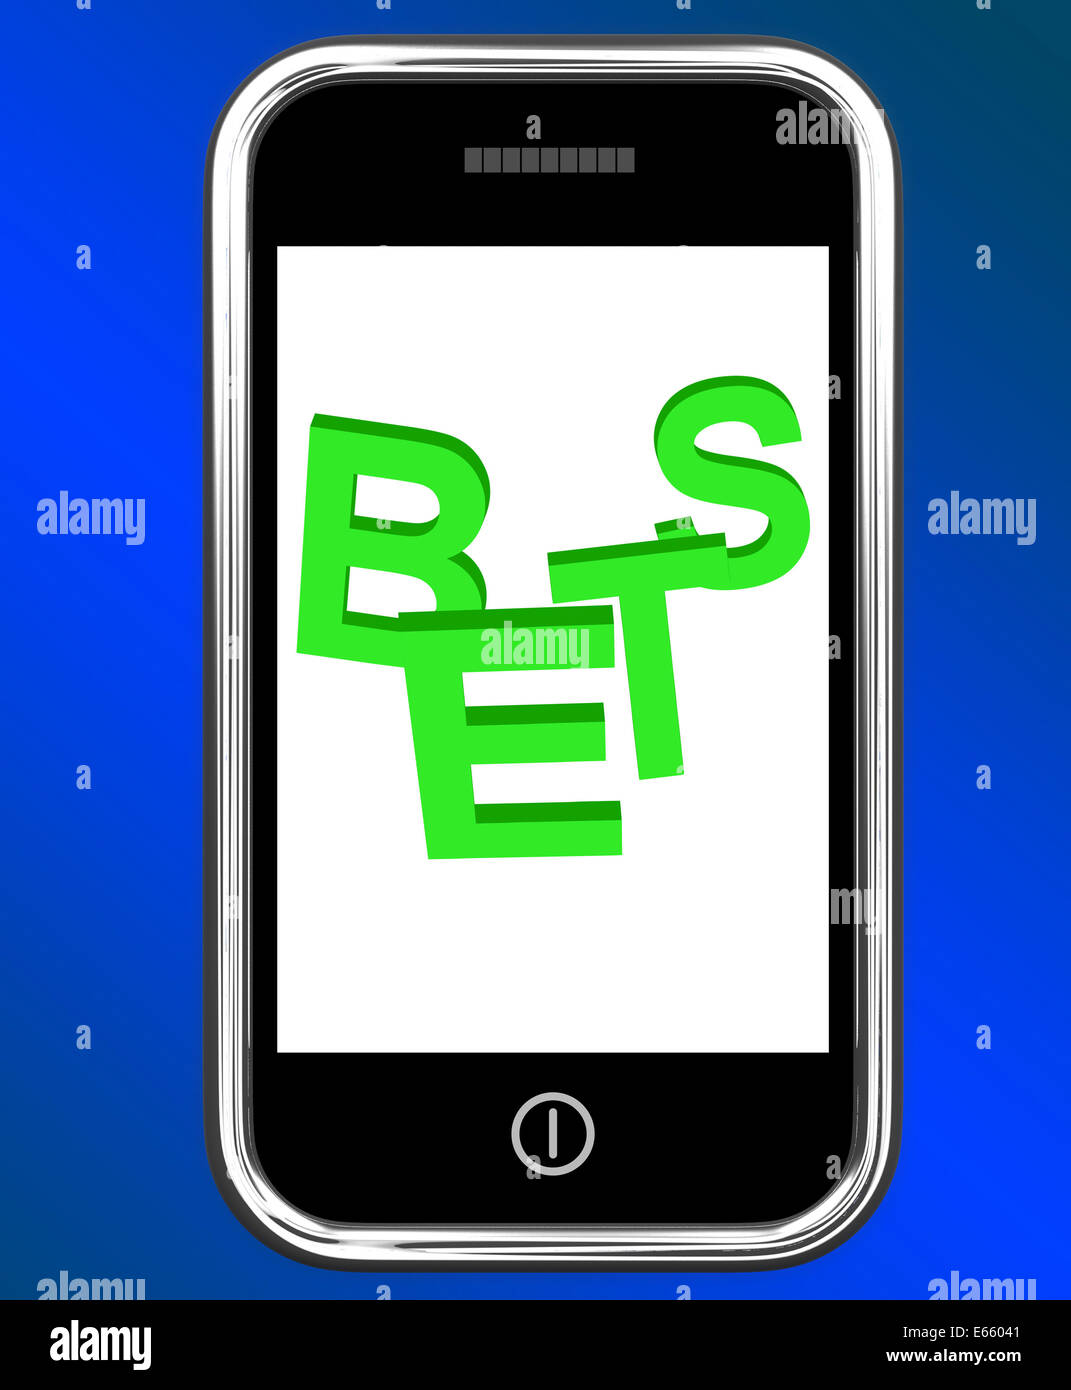 Bets On Phone Showing Online Or Internet Gambling - Stock Image